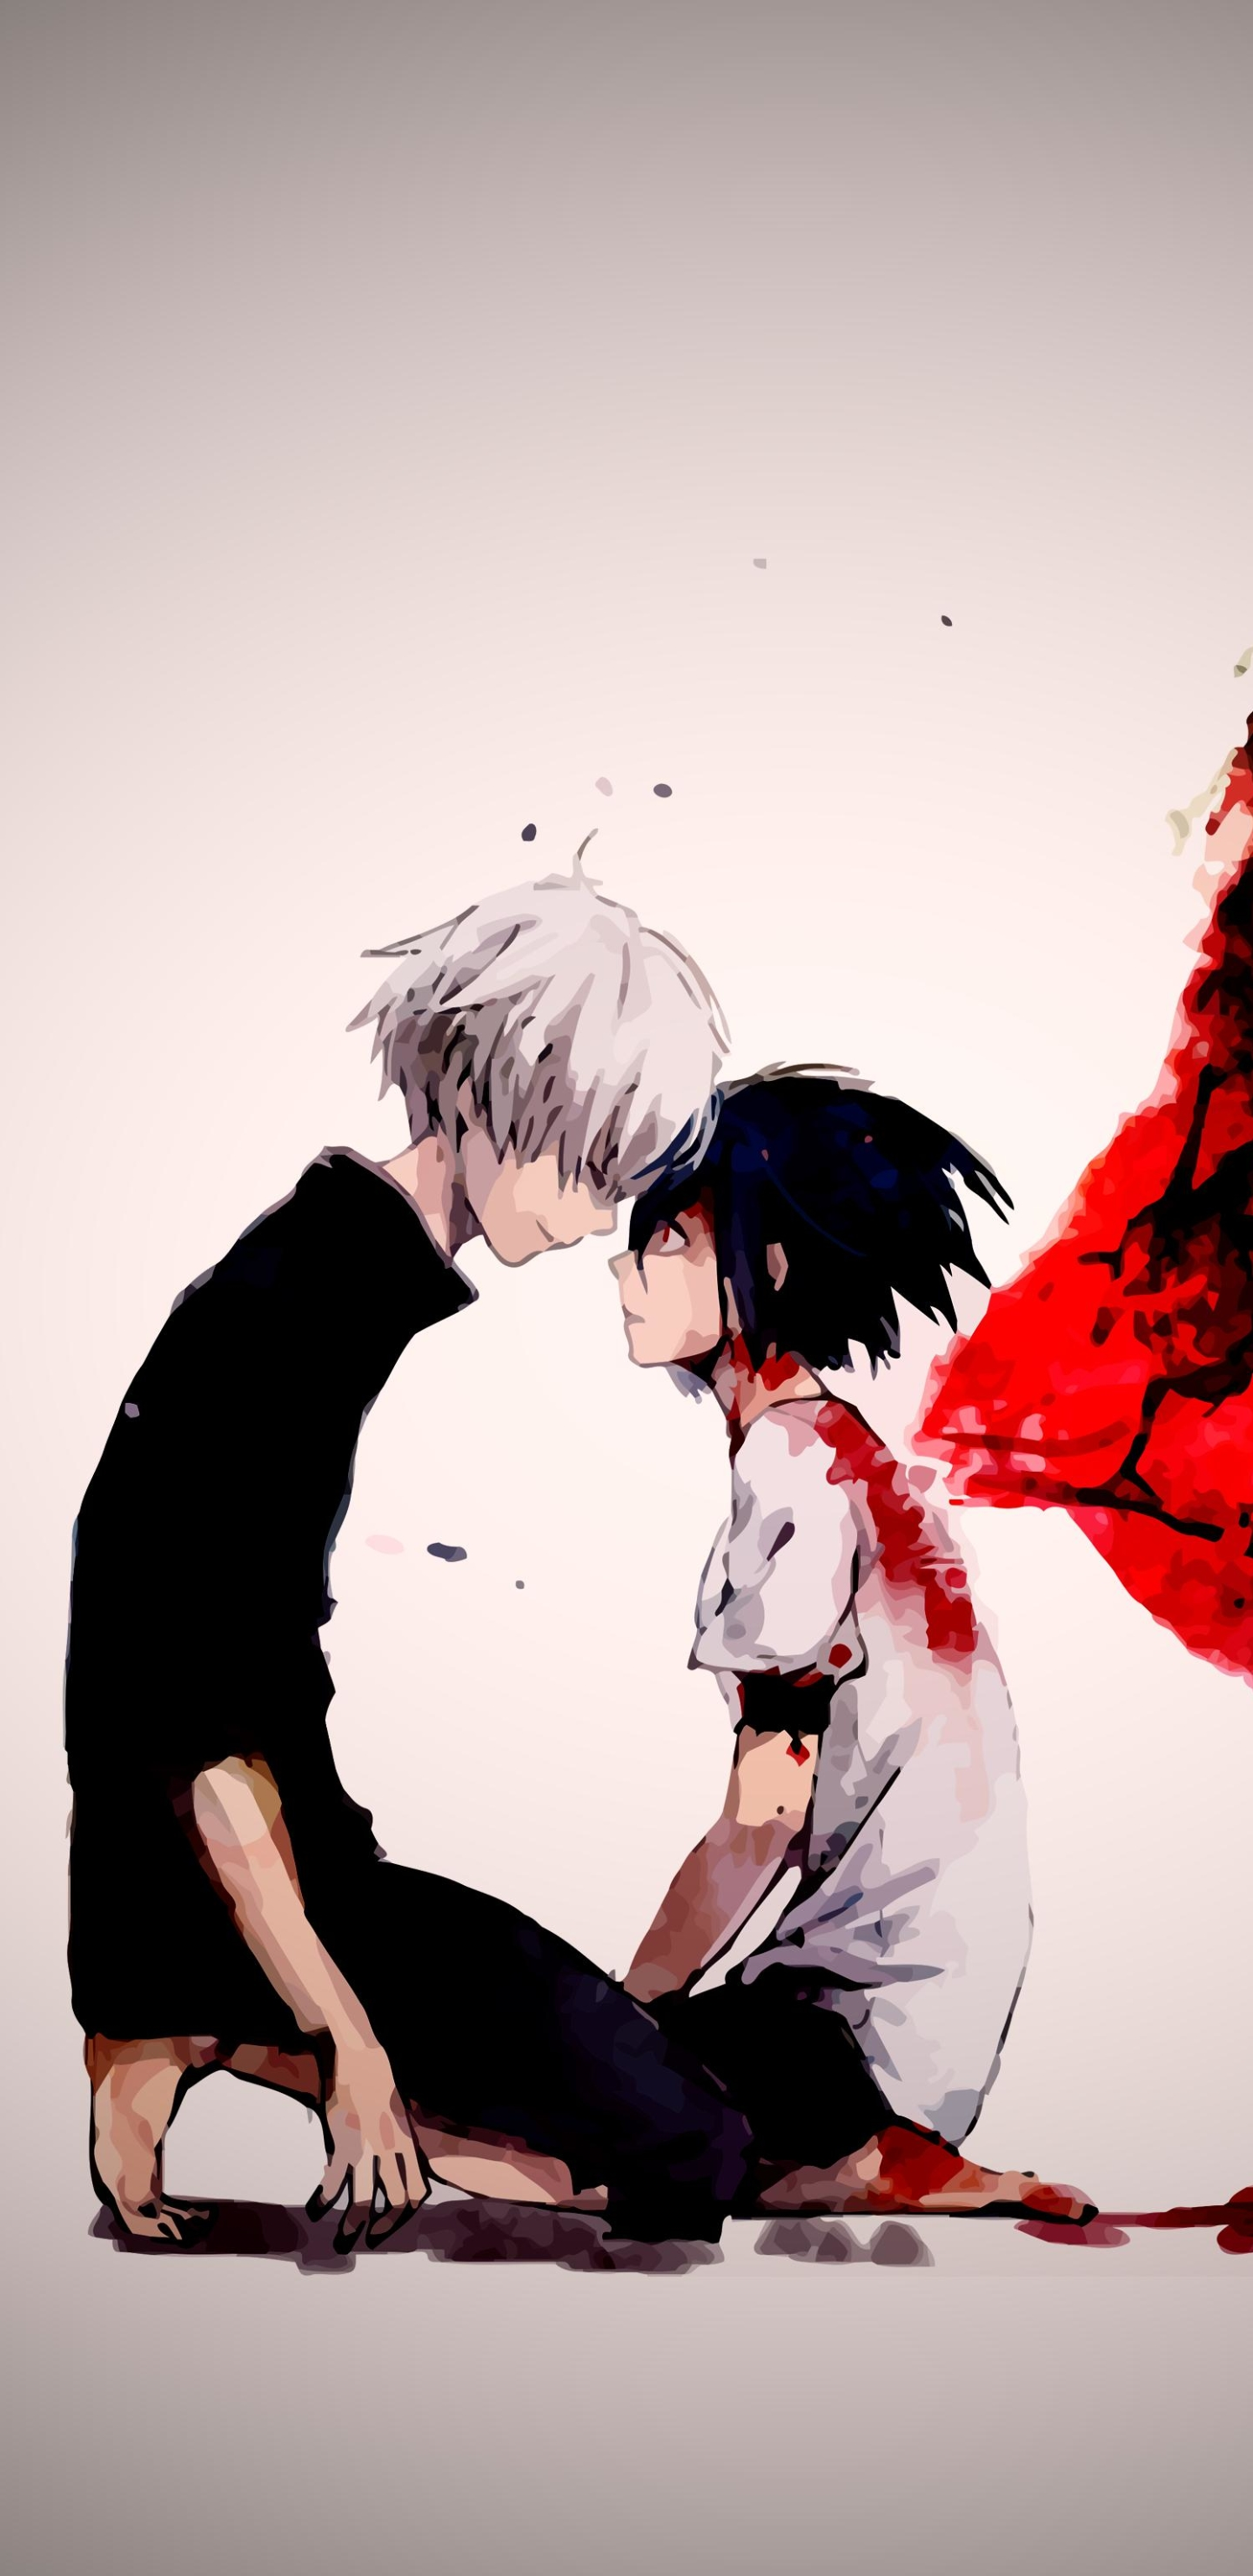 Anime Tokyo Ghoul 1440x2960 Wallpaper Id 714097 Mobile Abyss